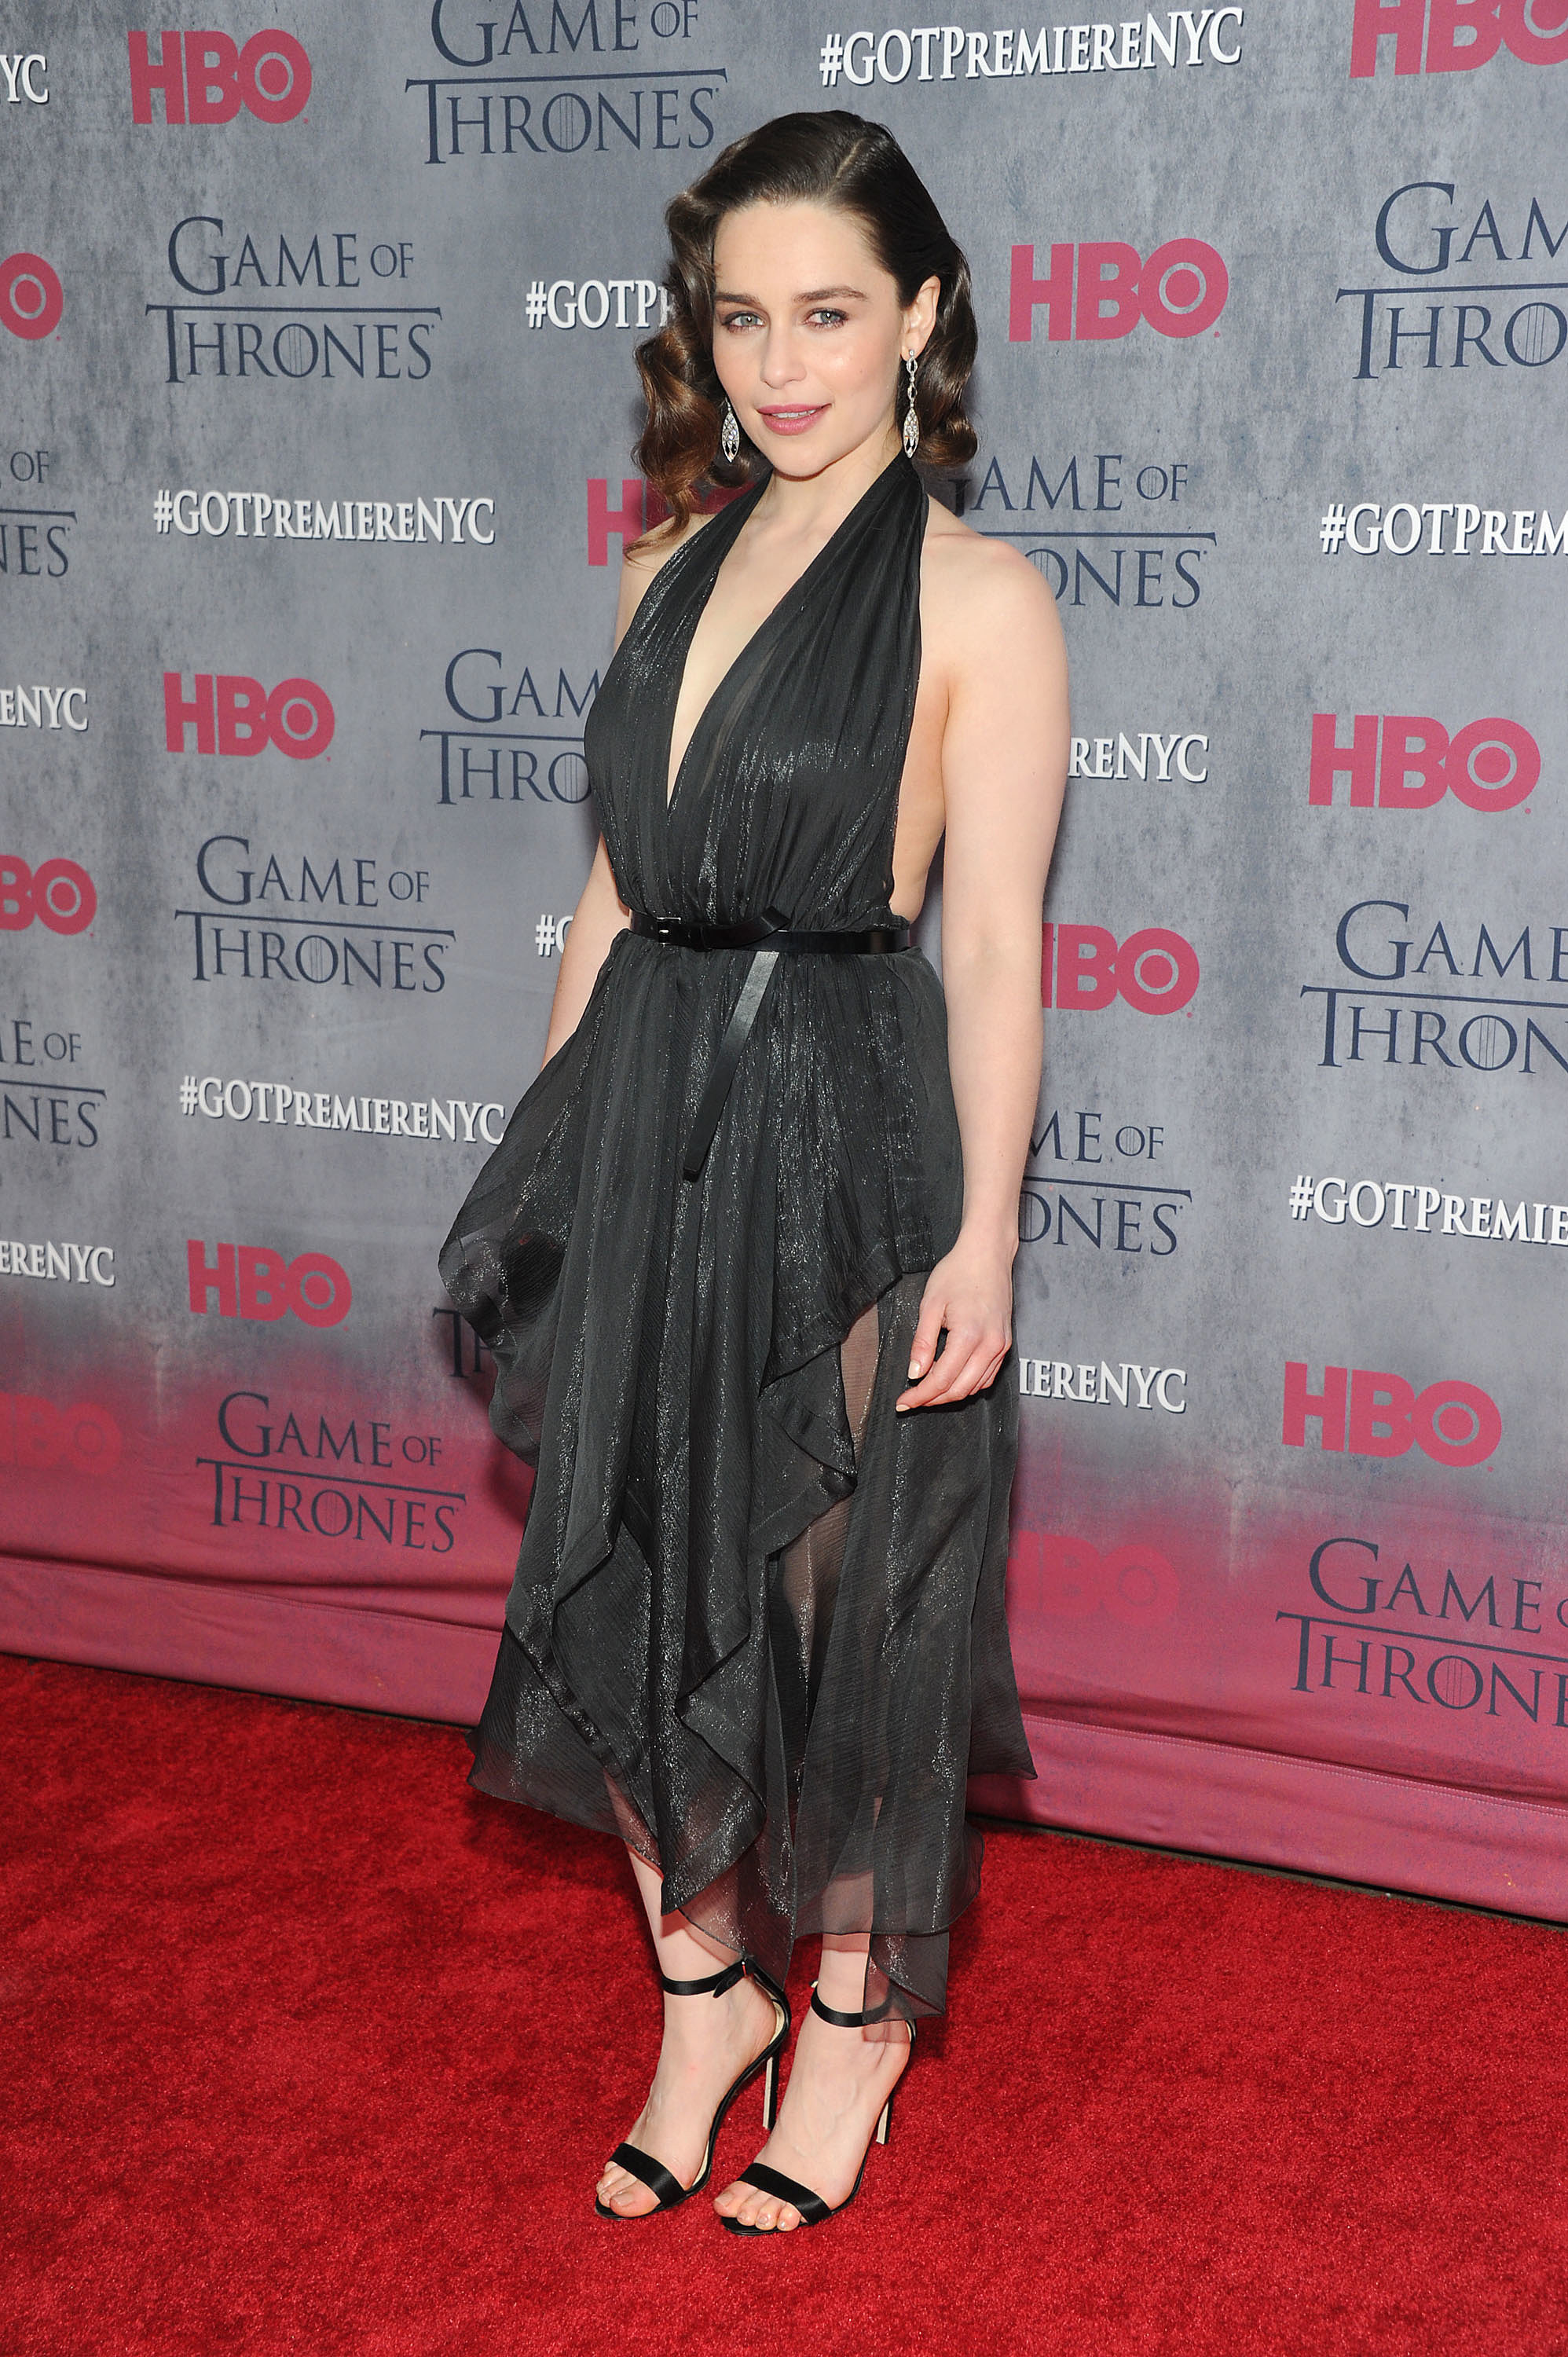 Game of Thrones Premiere 2014 March 2014 Game of Thrones